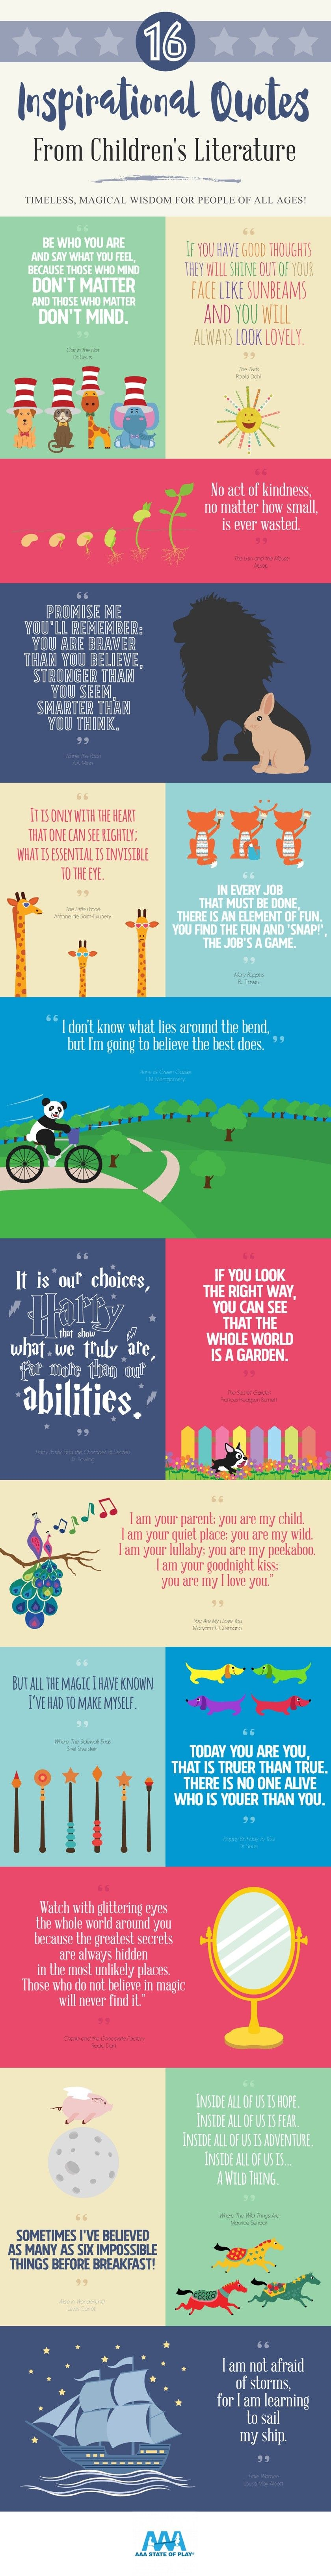 Inspirational Quotes About Loving Children 16 Inspirational Quotes From Children's Books Infographic  Book